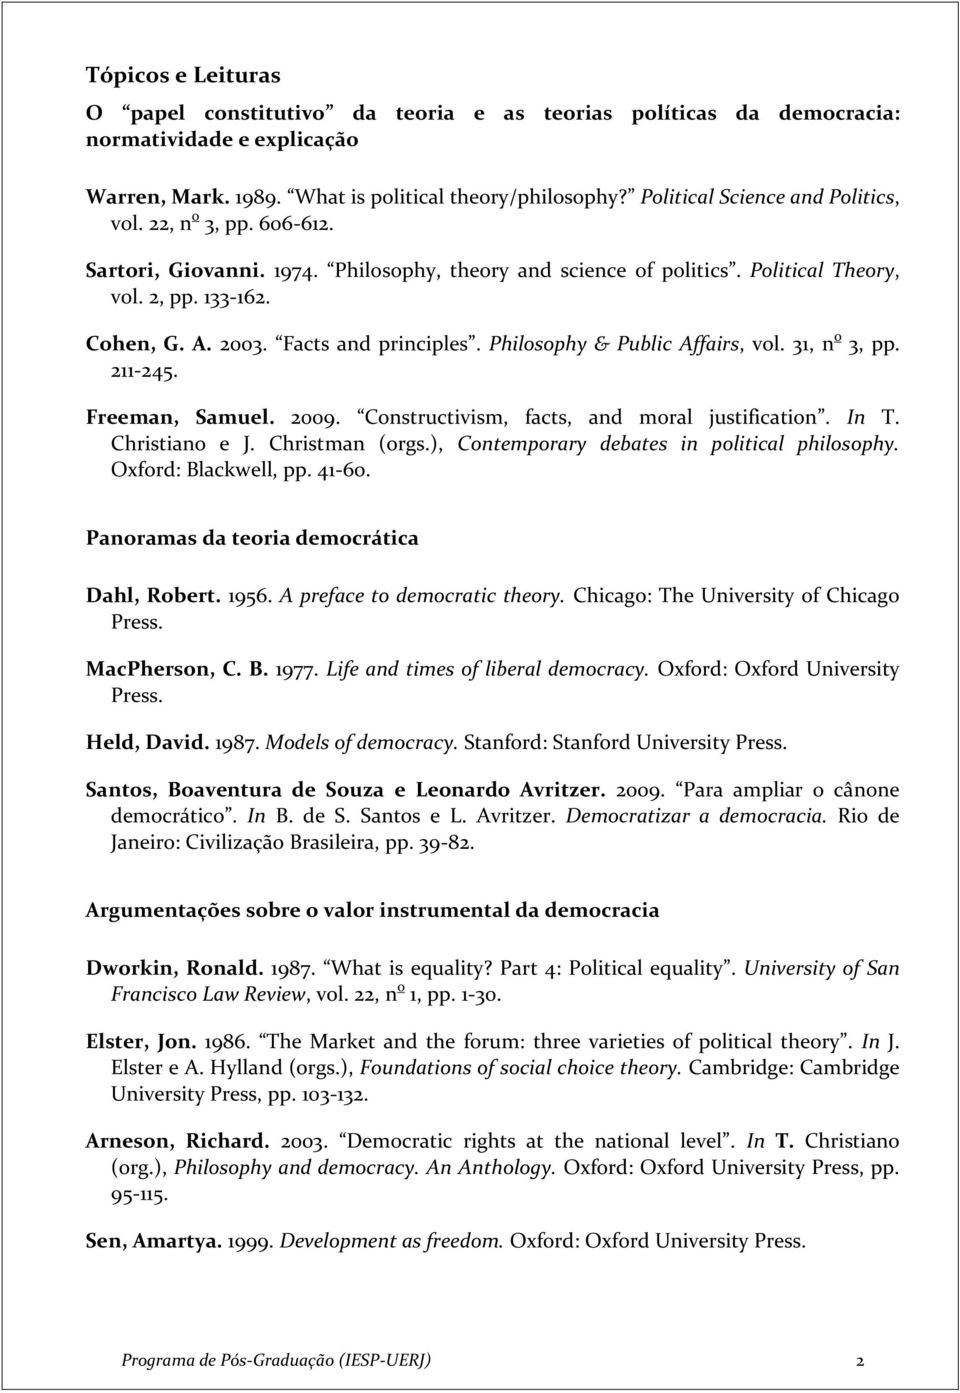 Facts and principles. Philosophy & Public Affairs, vol. 31, n o 3, pp. 211-245. Freeman, Samuel. 2009. Constructivism, facts, and moral justification. In T. Christiano e J. Christman (orgs.